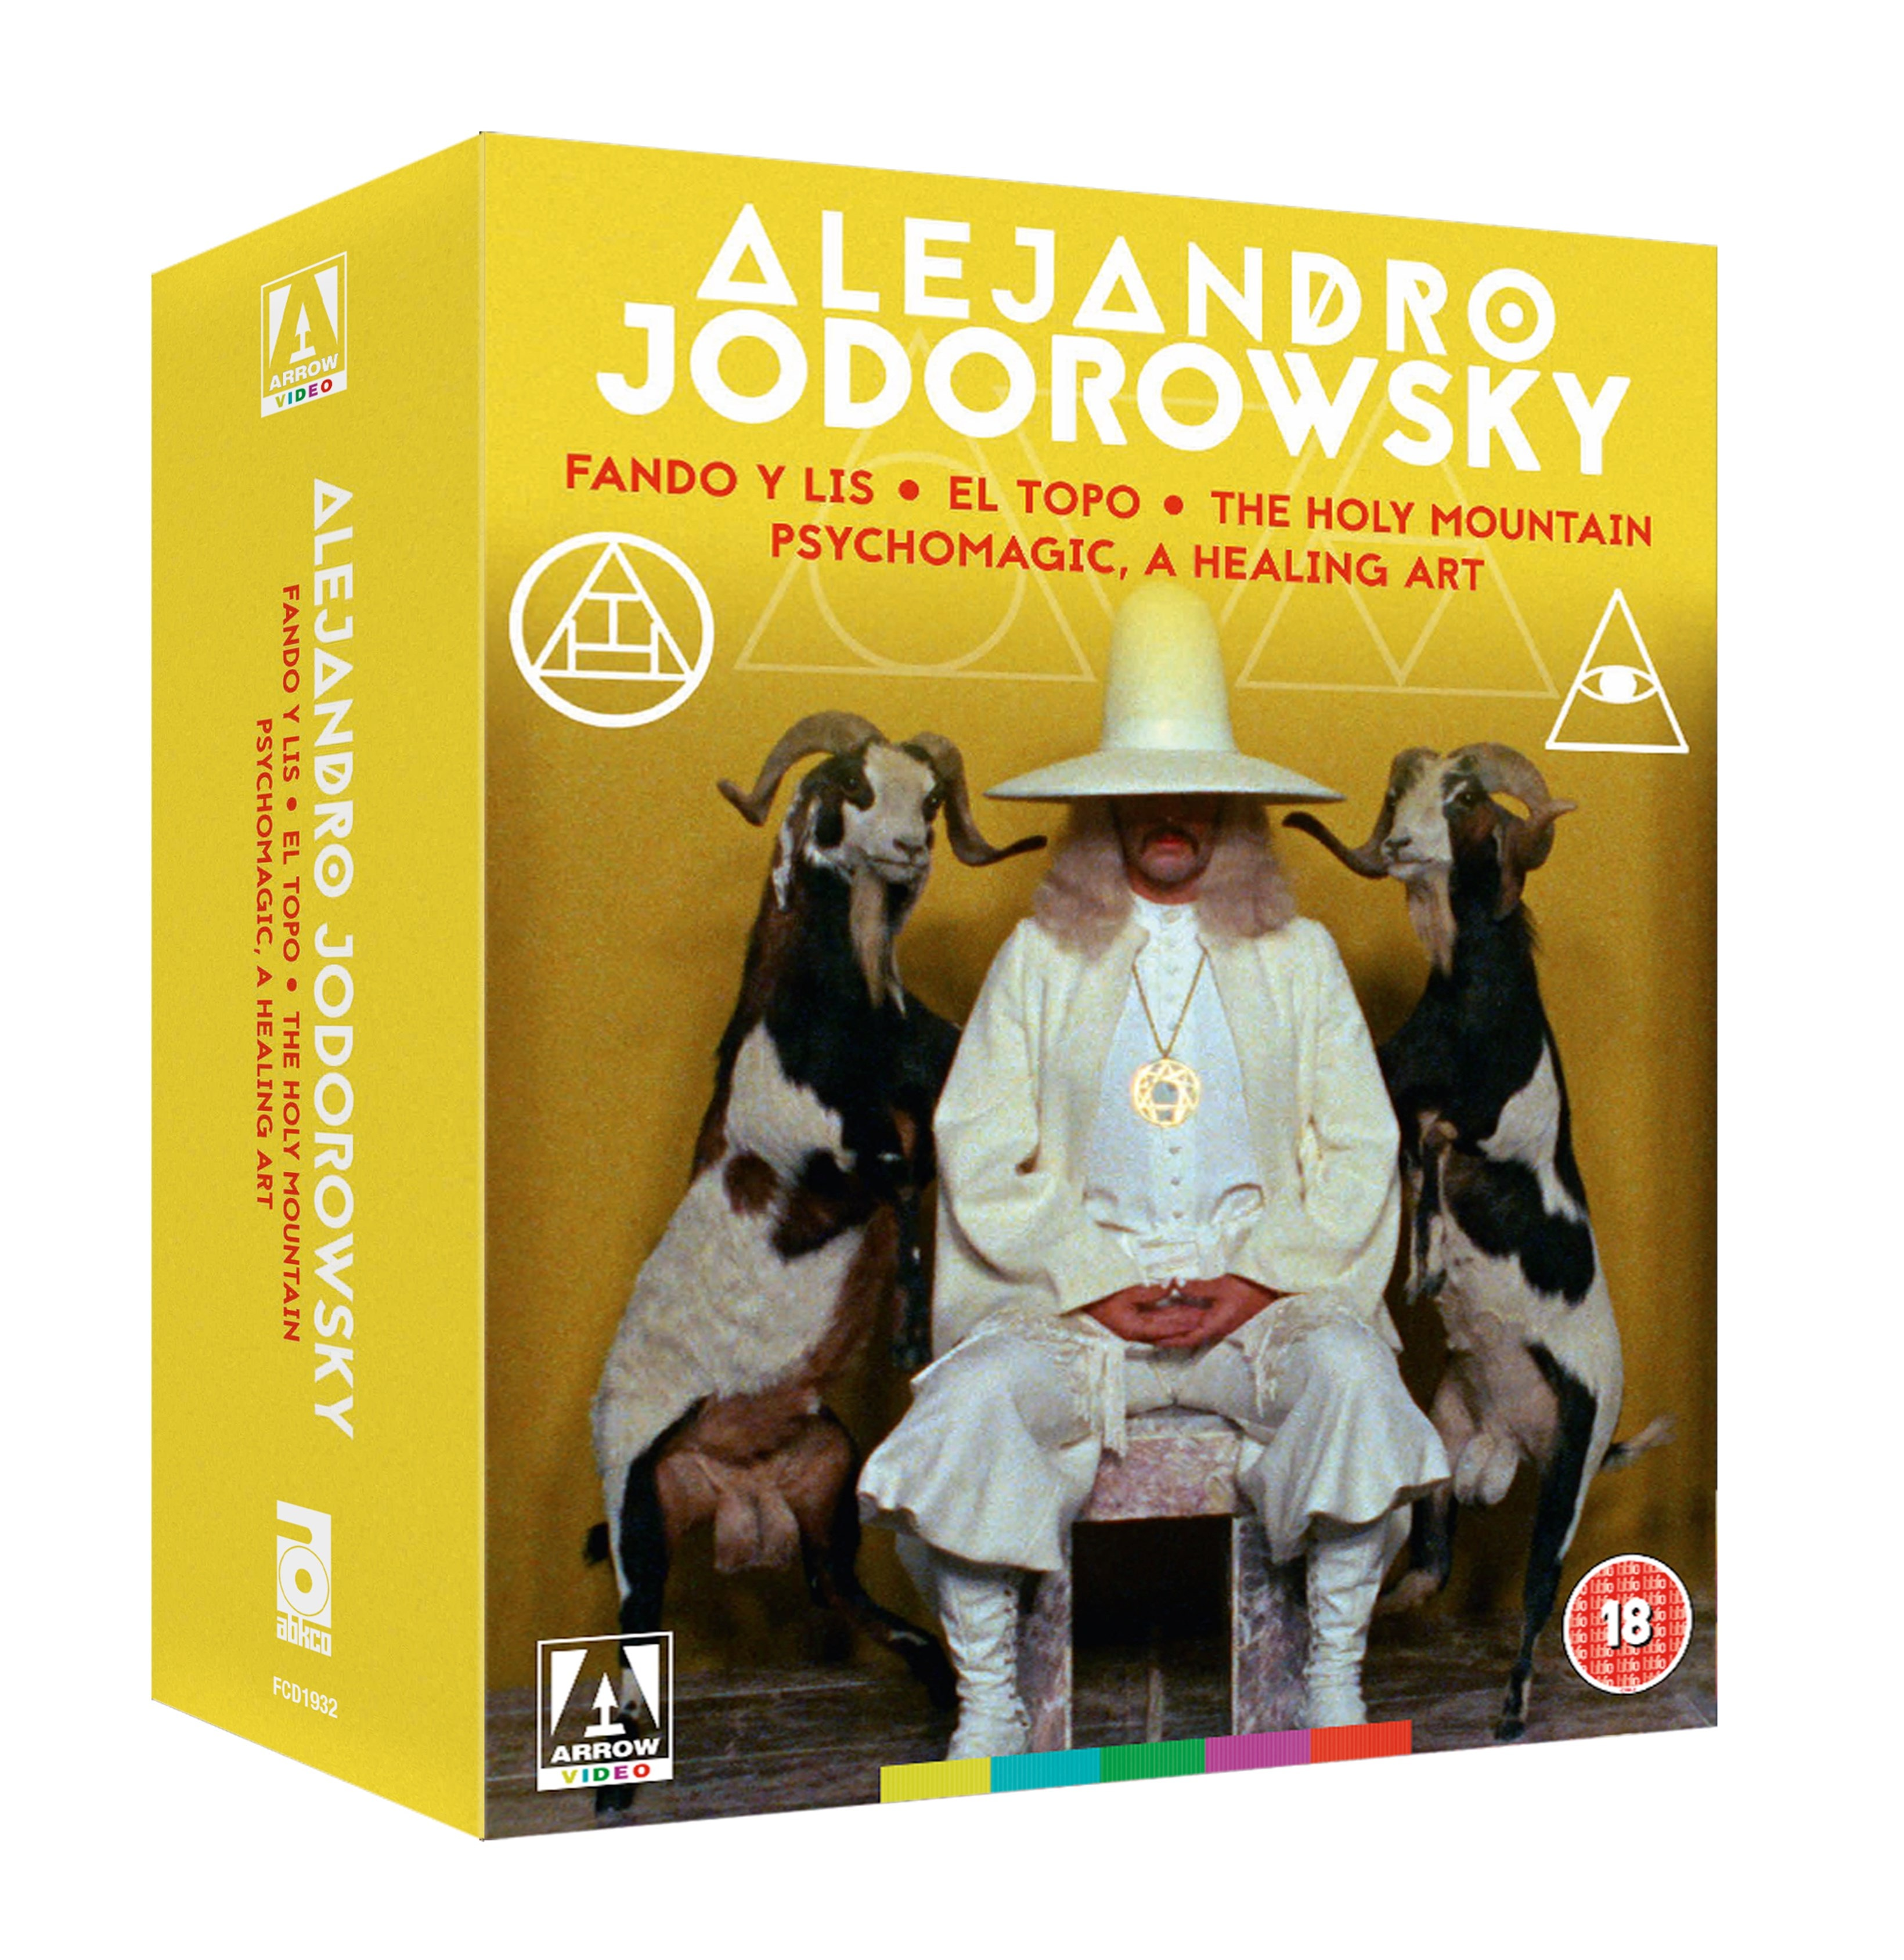 Alejandro Jodorowsky Collection - 2